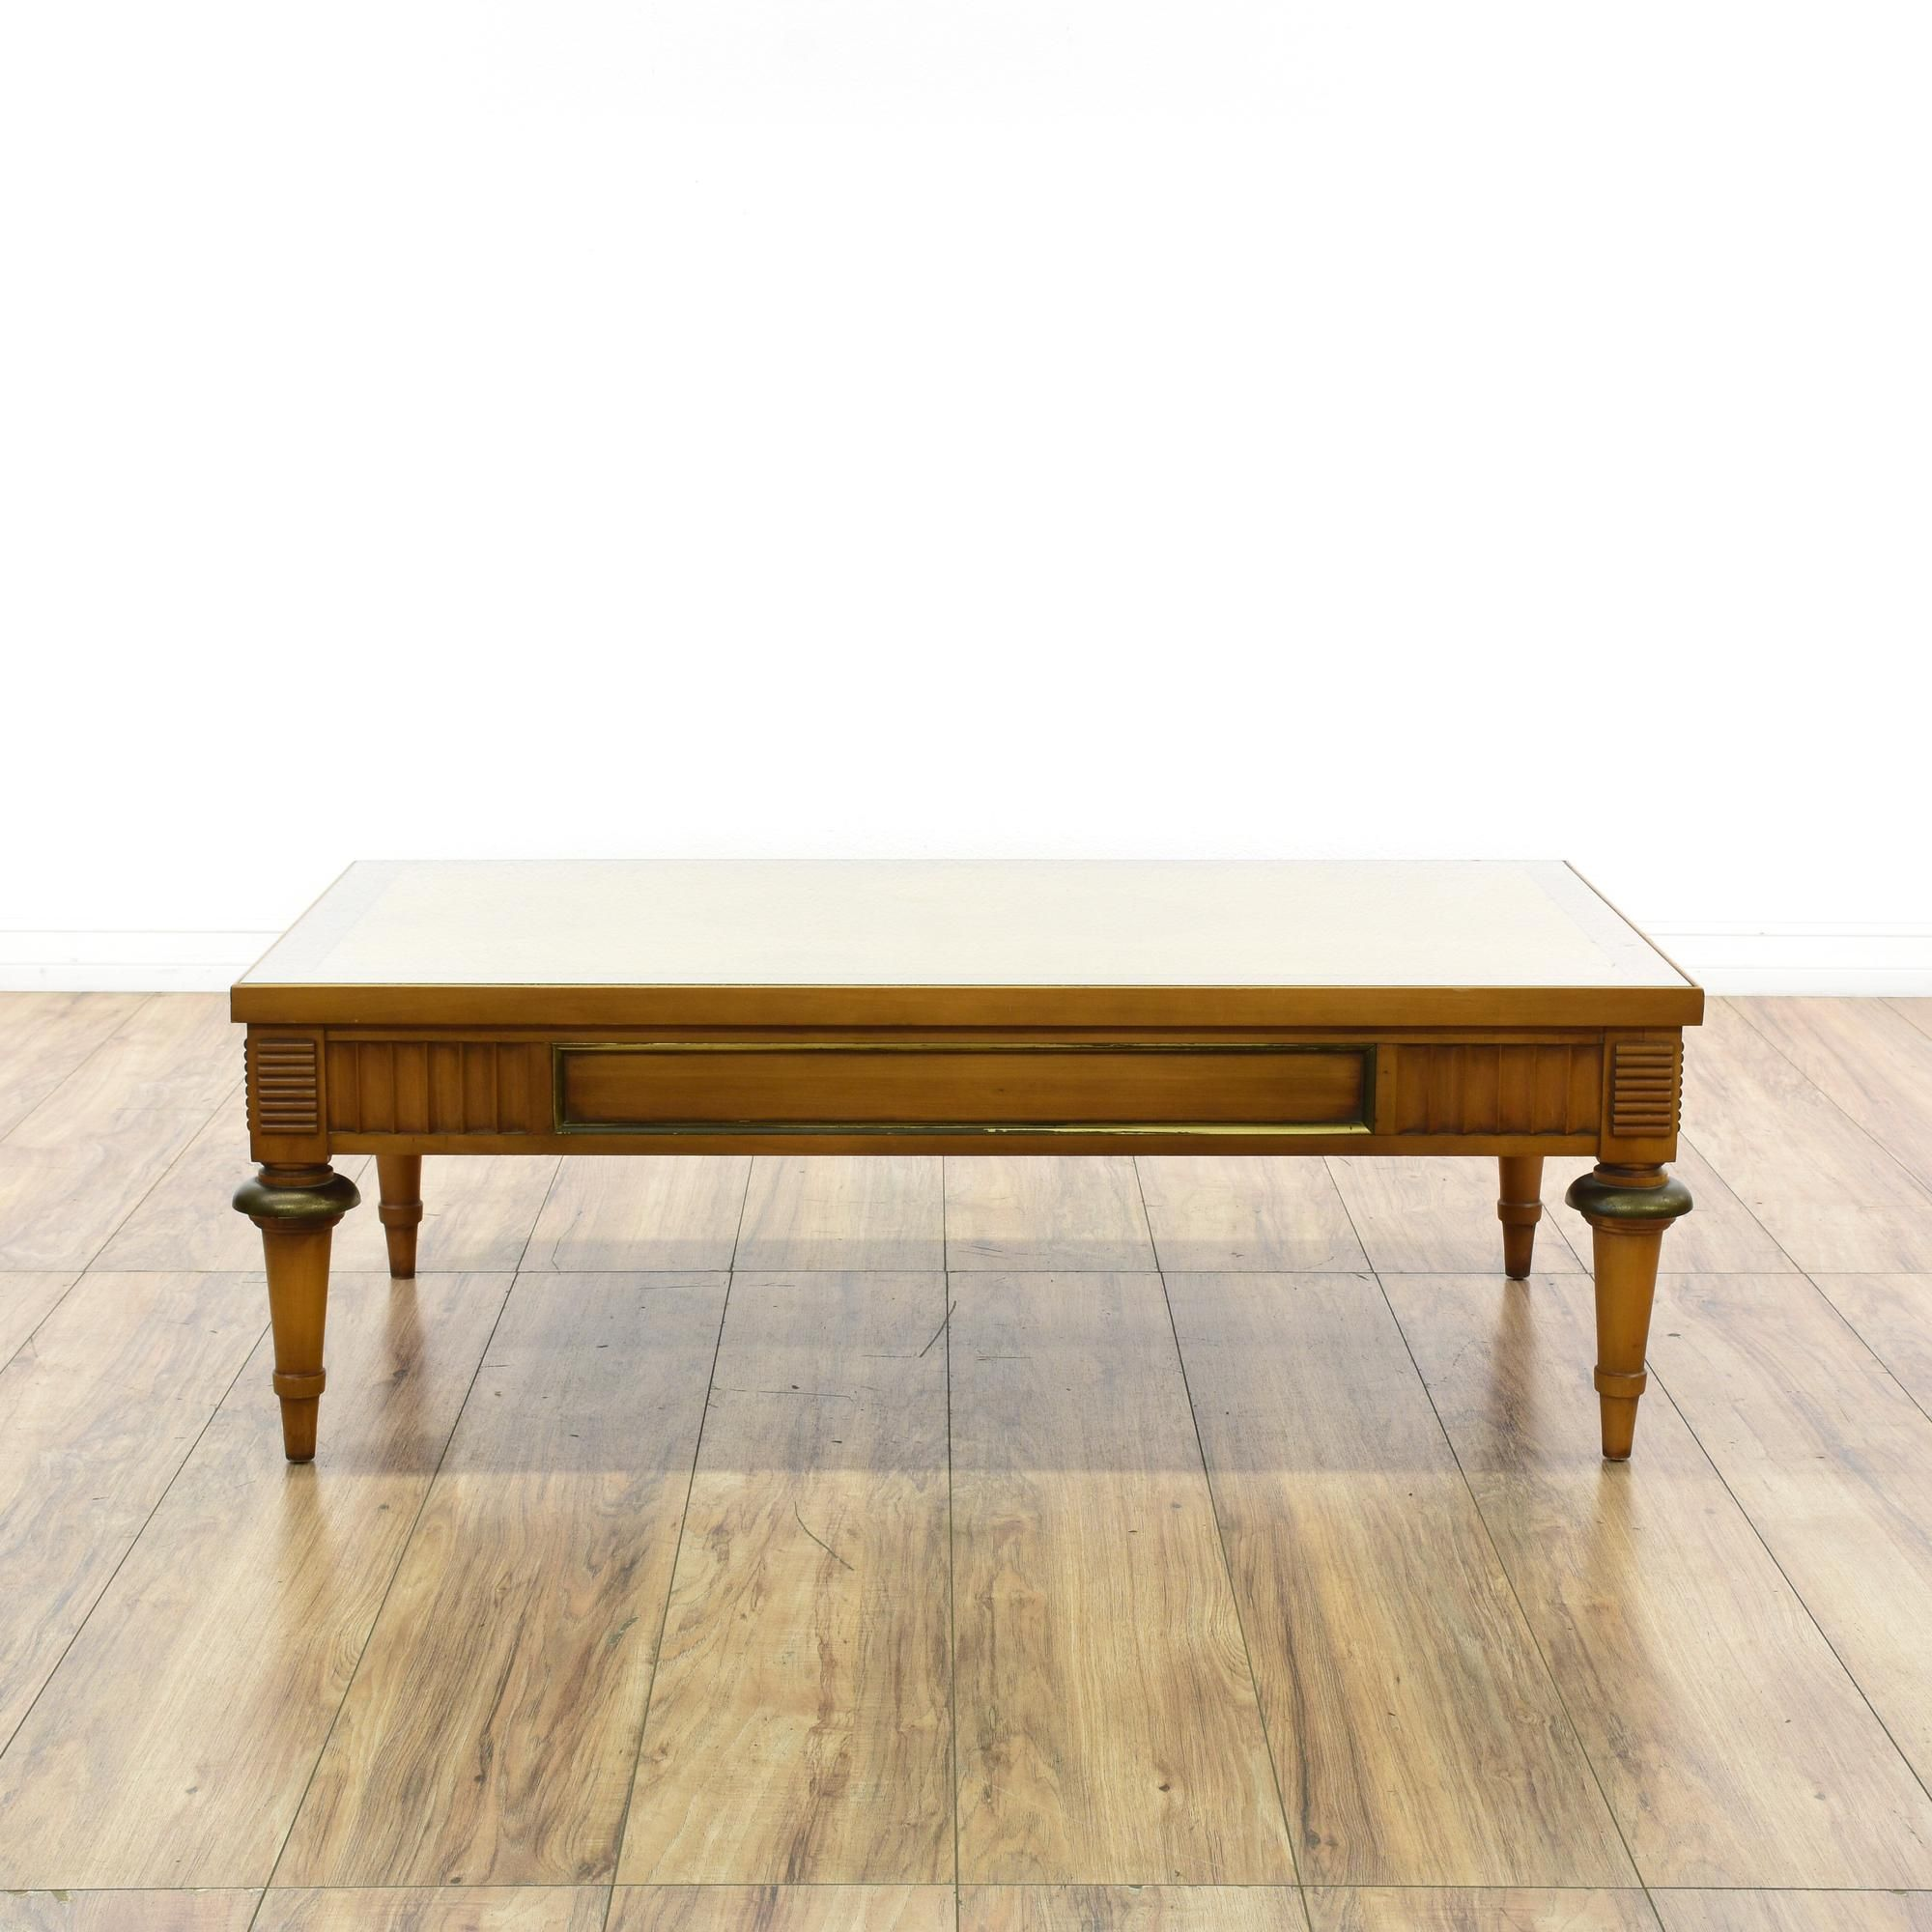 This lane coffee table is featured in a solid wood with a glossy this lane coffee table is featured in a solid wood with a glossy maple finish and a checkered parquet top this bohemian coffee table has a glass table geotapseo Gallery